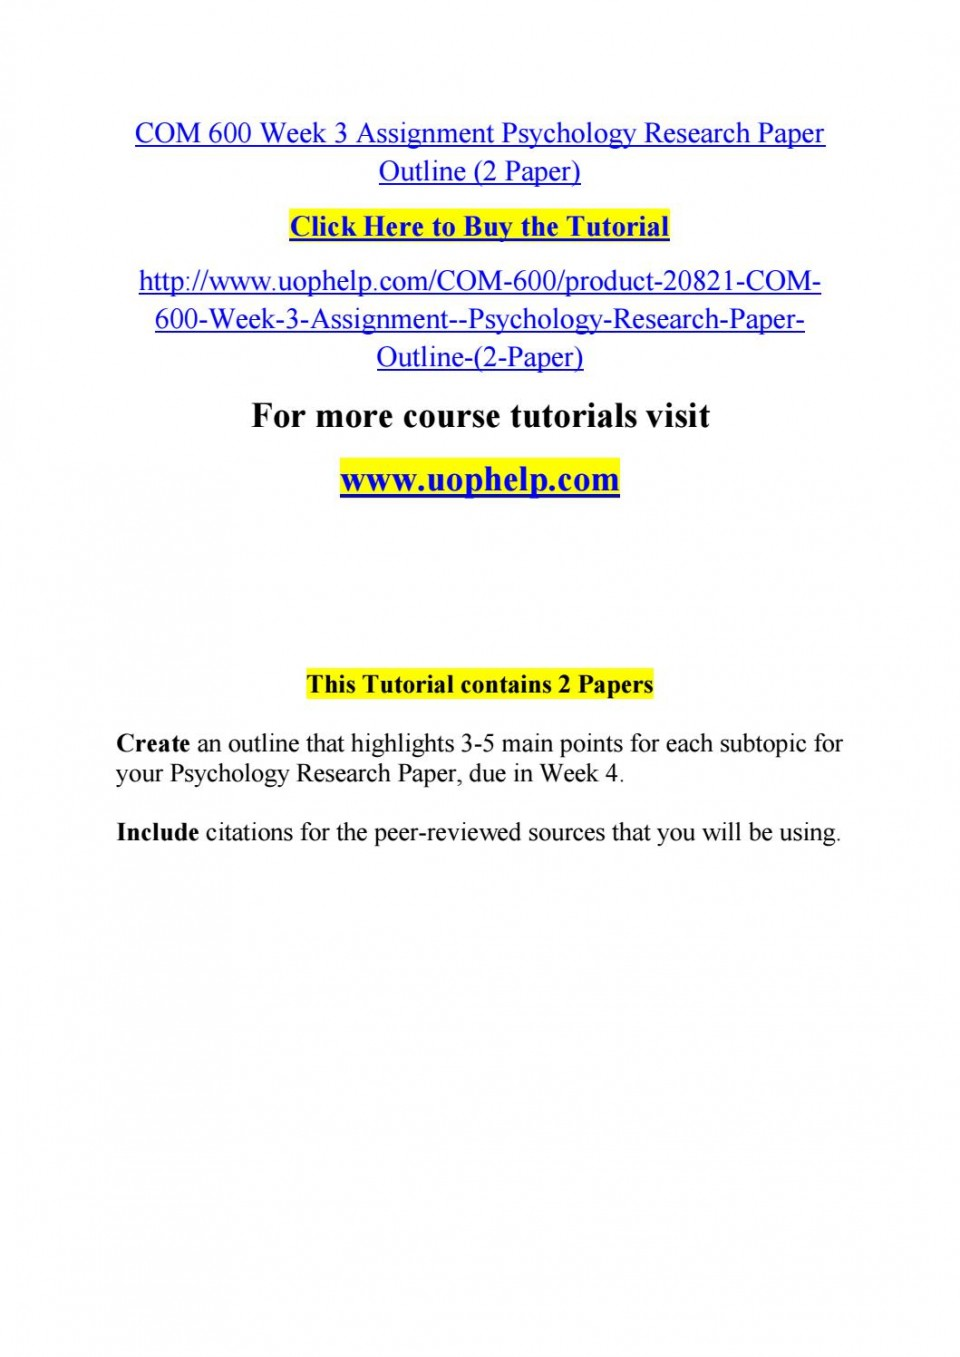 007 Psychology Research Paper Outline Com Page 1 Striking 600 Com/600 960